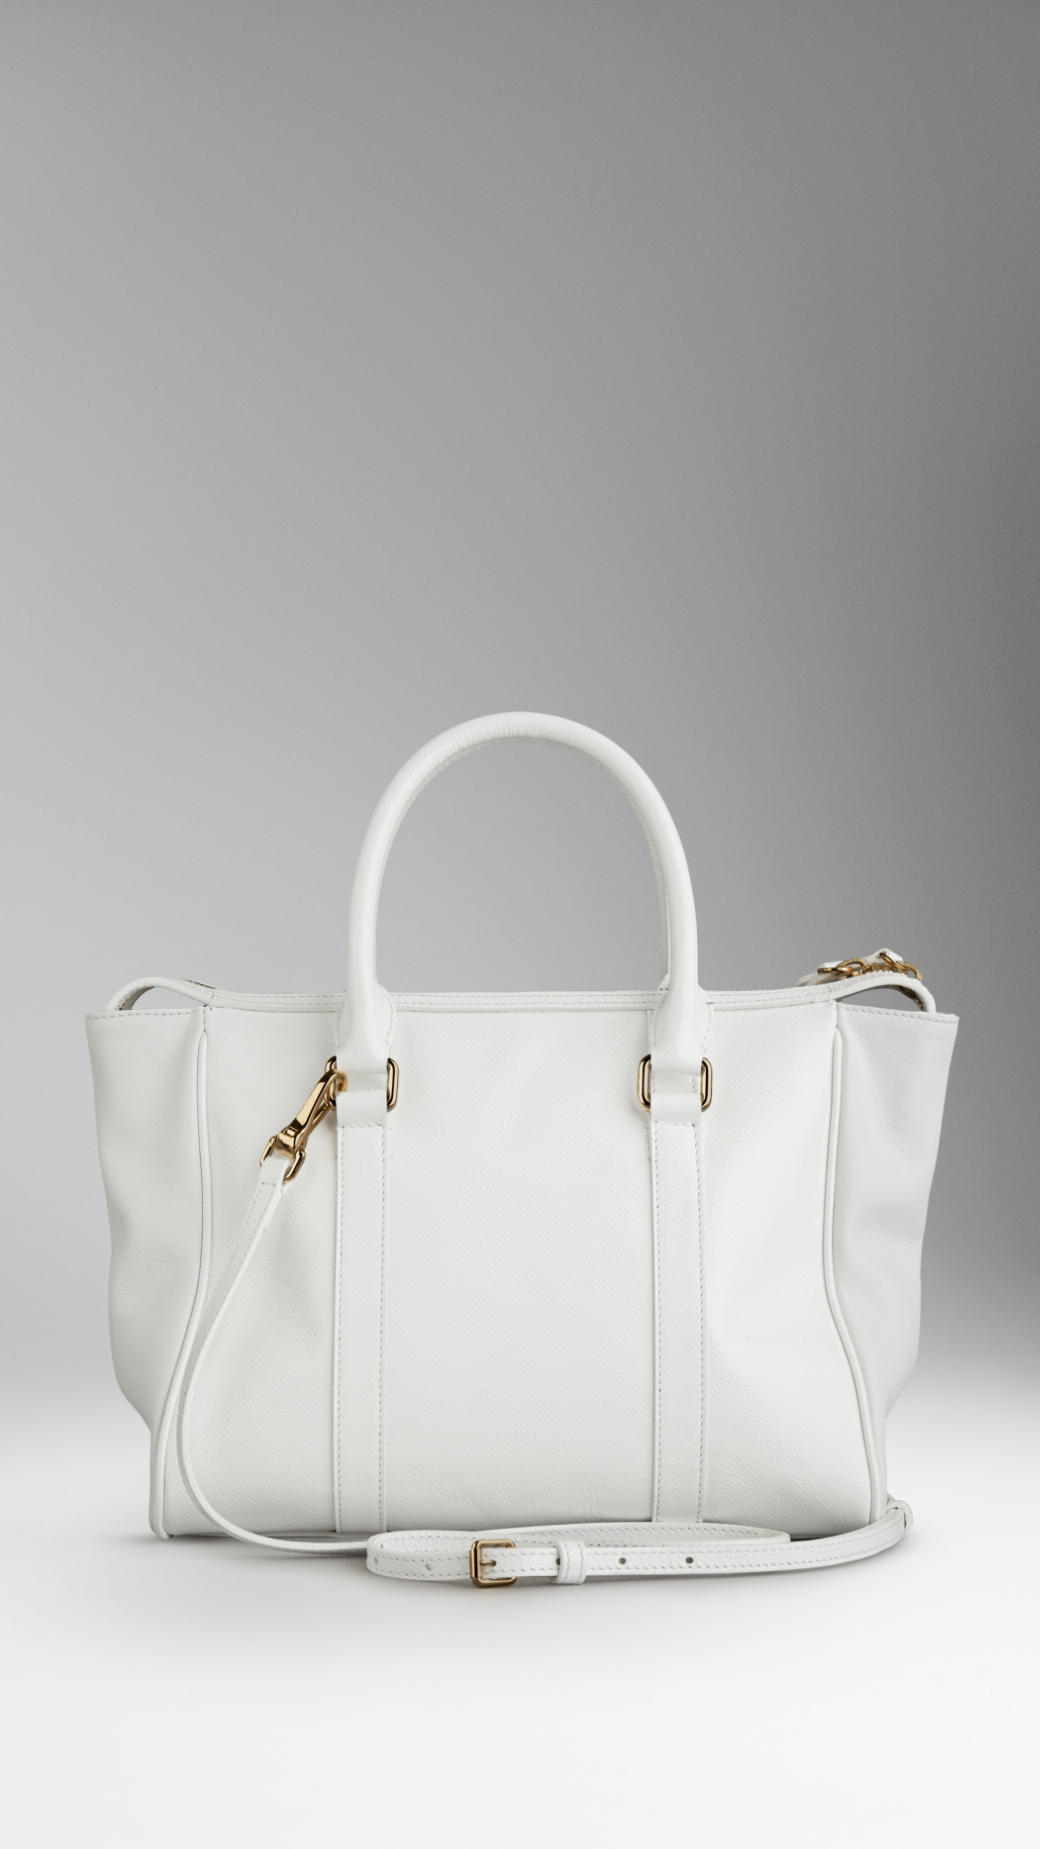 Burberry Medium Patent London Leather Tote Bag in White | Lyst